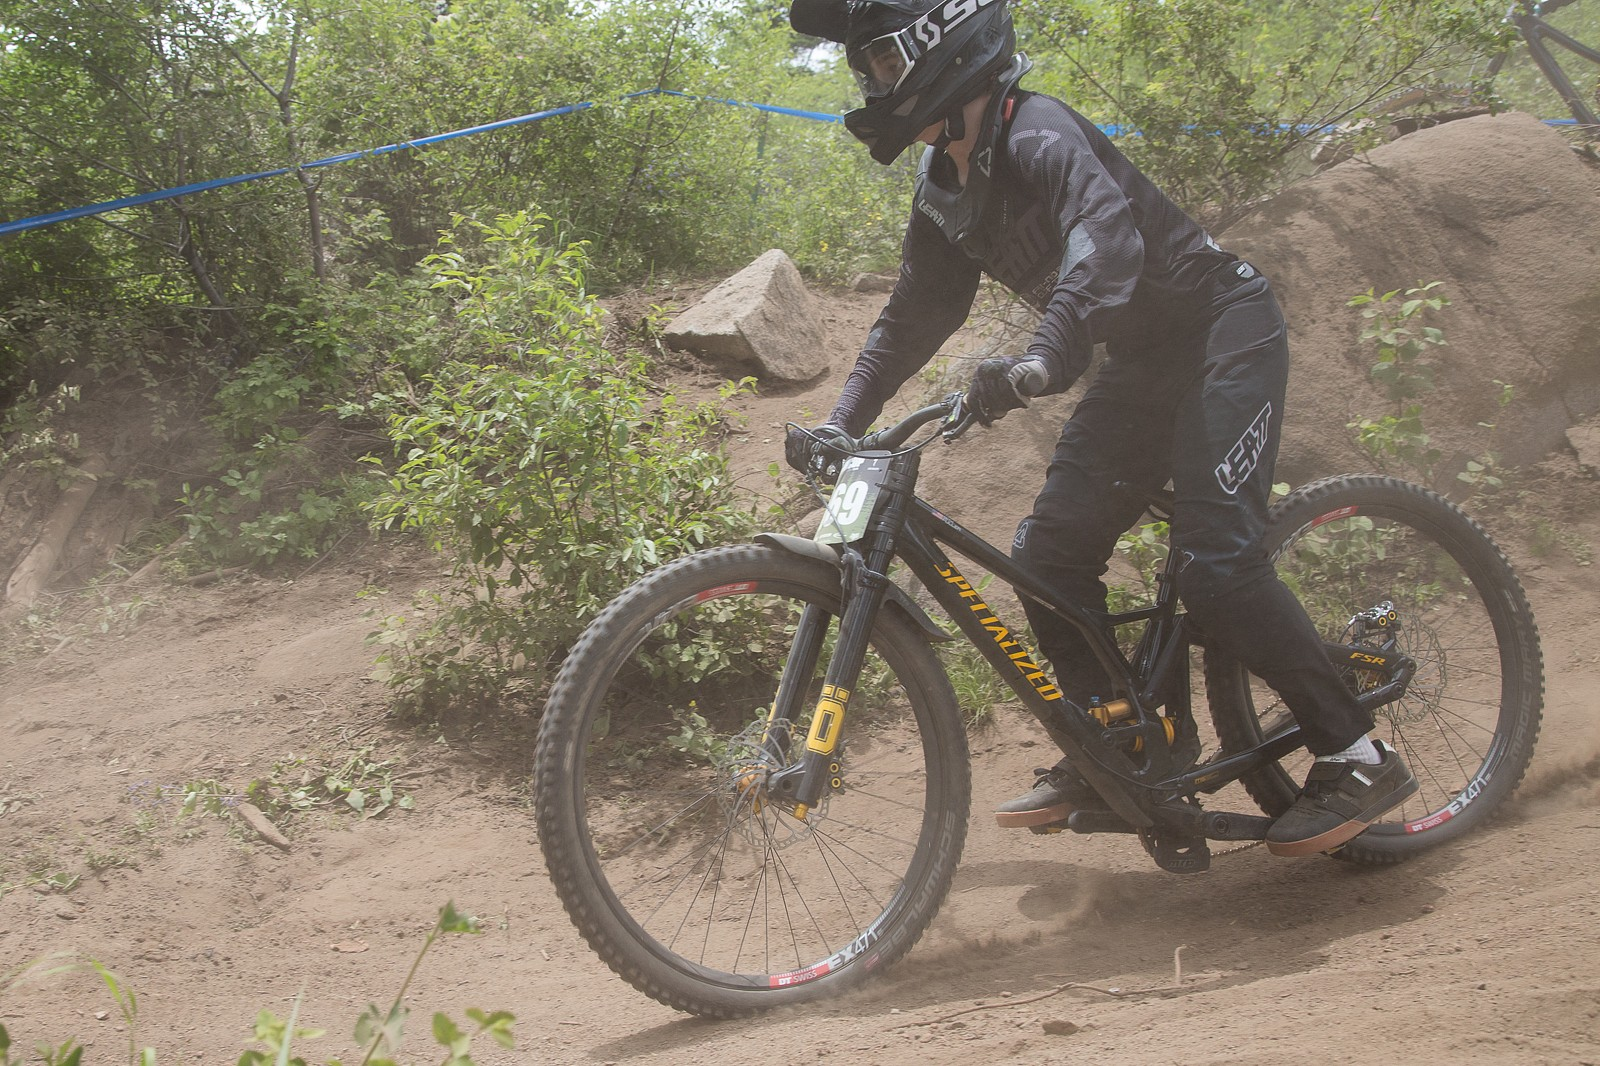 G-Out Project, Tamarack #USDH National-10 - G-Out Project - Tamarack NW Cup / #USDH - Mountain Biking Pictures - Vital MTB